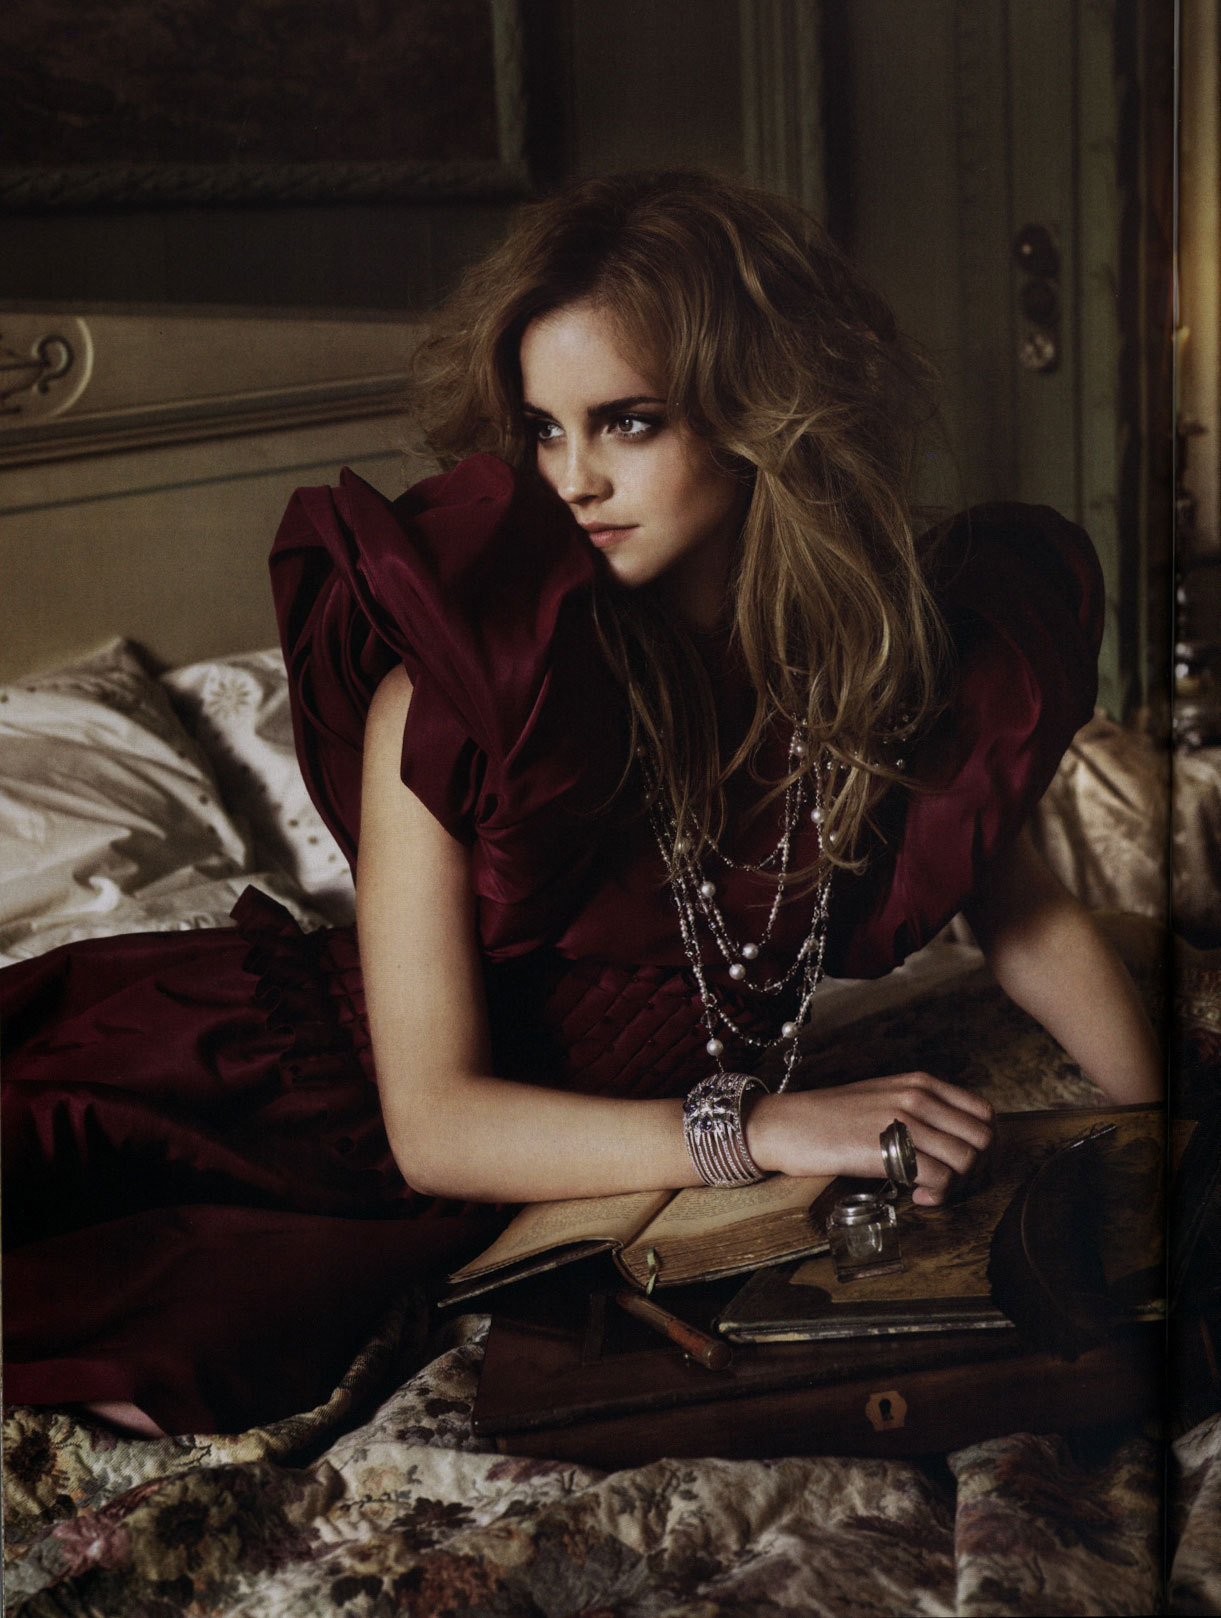 Vogue Italia - emma-watson photo